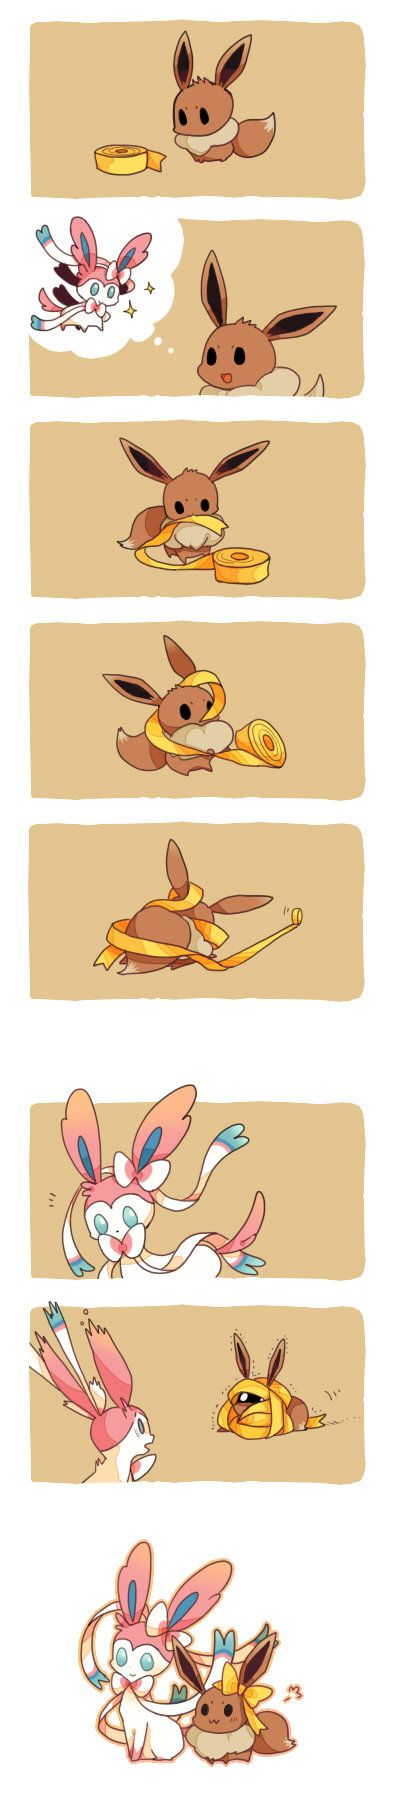 Eevee is adorable!